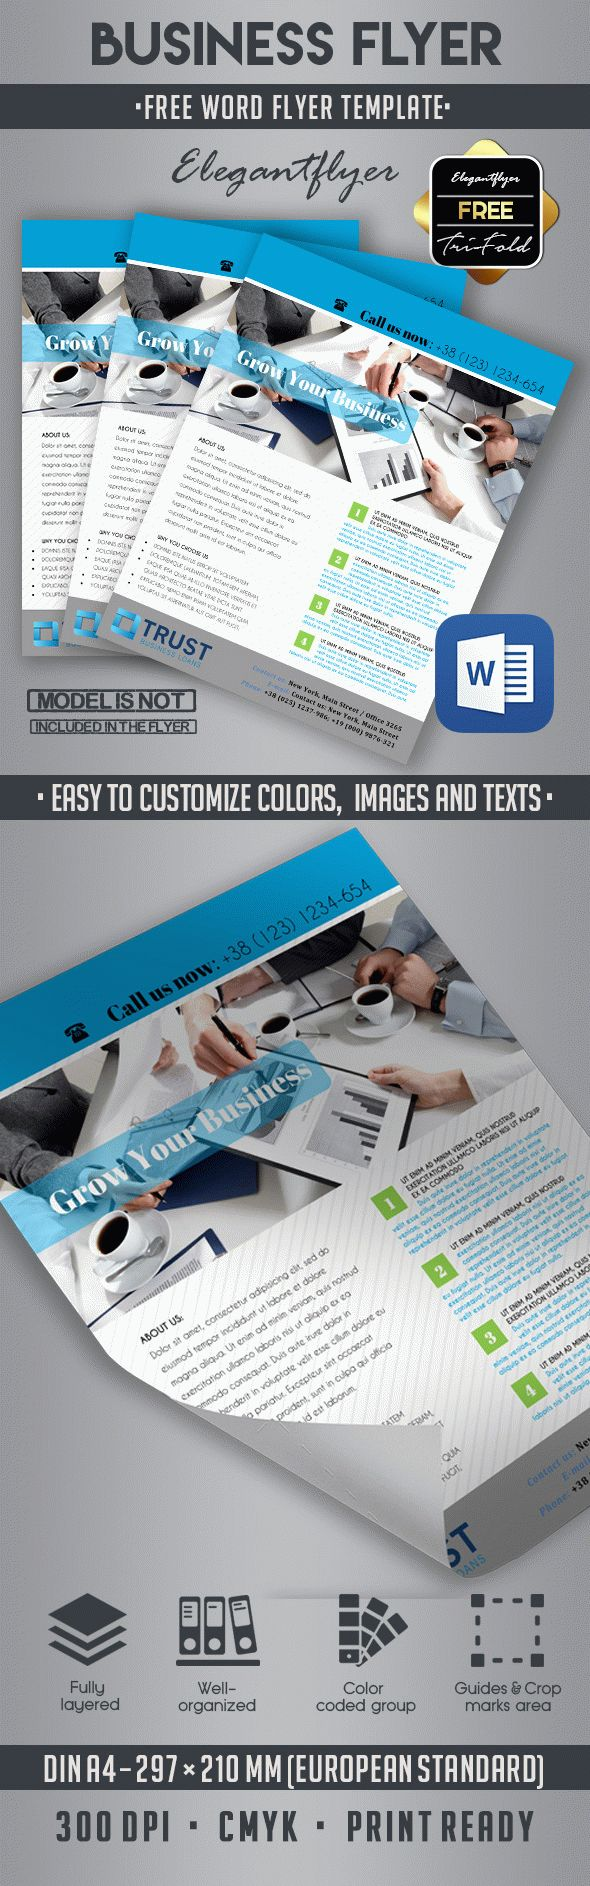 10 best business flyer templates in word by elegantflyer 10 best business flyer templates in word accmission